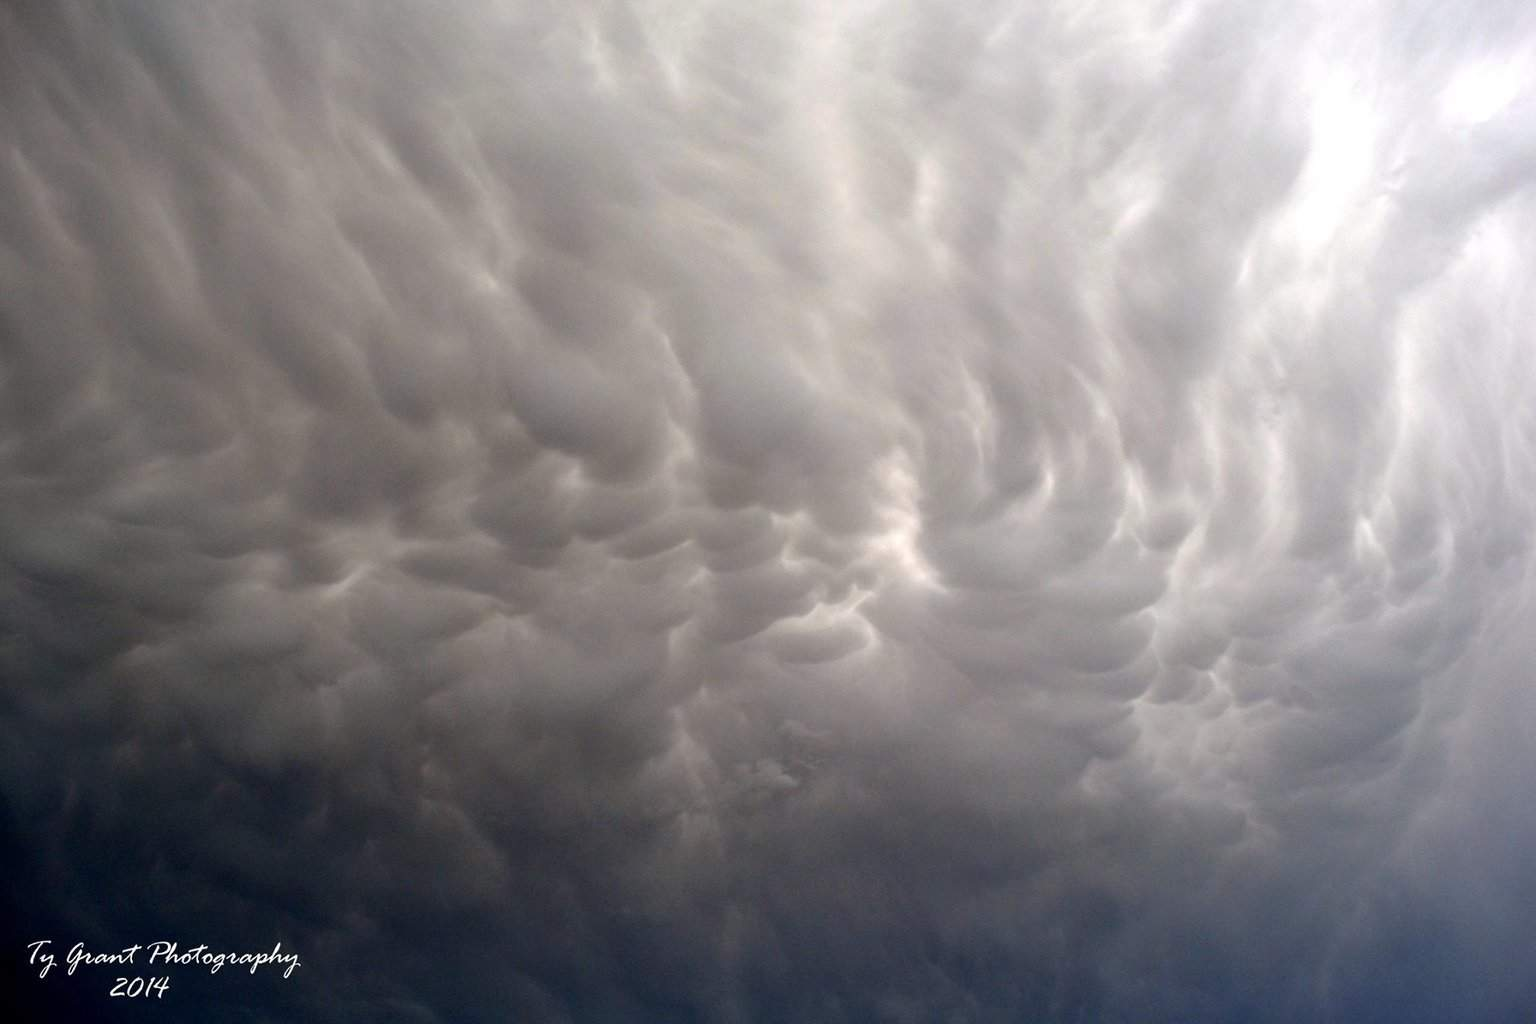 I am a 16 year old kid that loves weather. Here's a great shot of some mammatus clouds that I got today. 3/28/2014. Belton, TX.